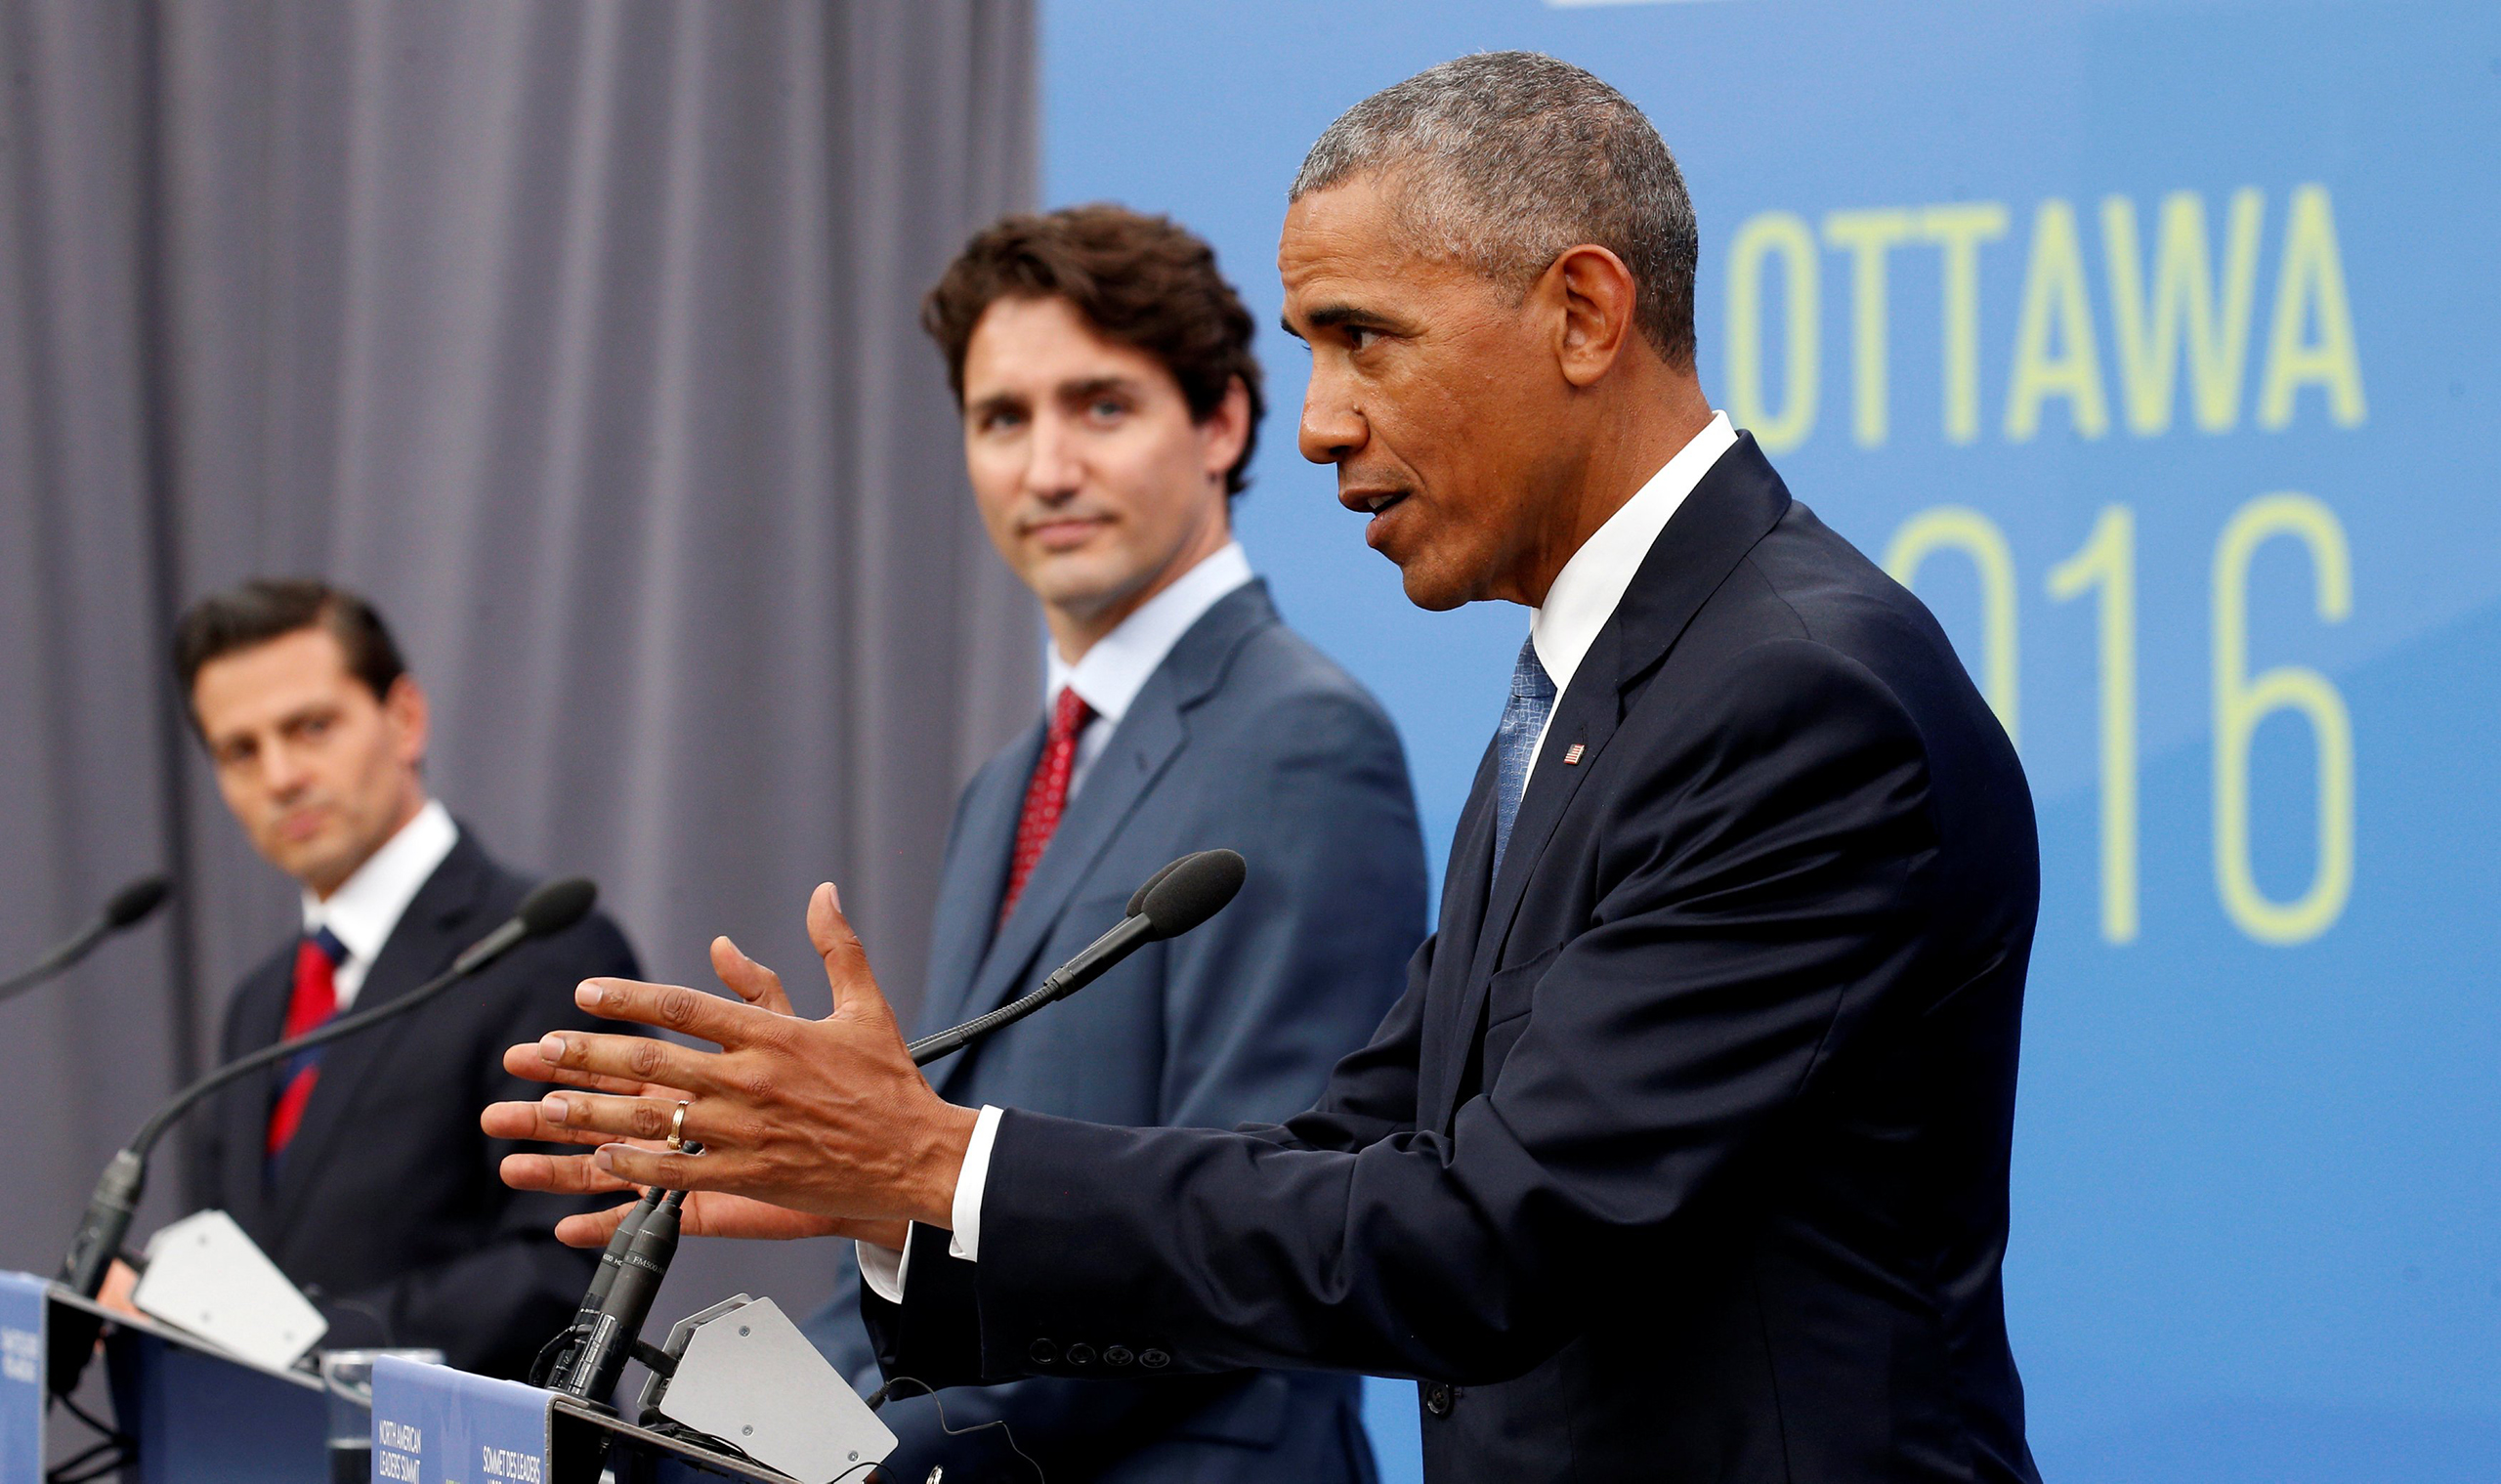 Mexican President Enrique Pena Nieto, (L) Canadian Prime Minister Justin Trudeau (C) and U.S. President Barack Obama take part in a news conference during the North American Leaders' Summit in Ottawa, Canada, on June 29, 2016.